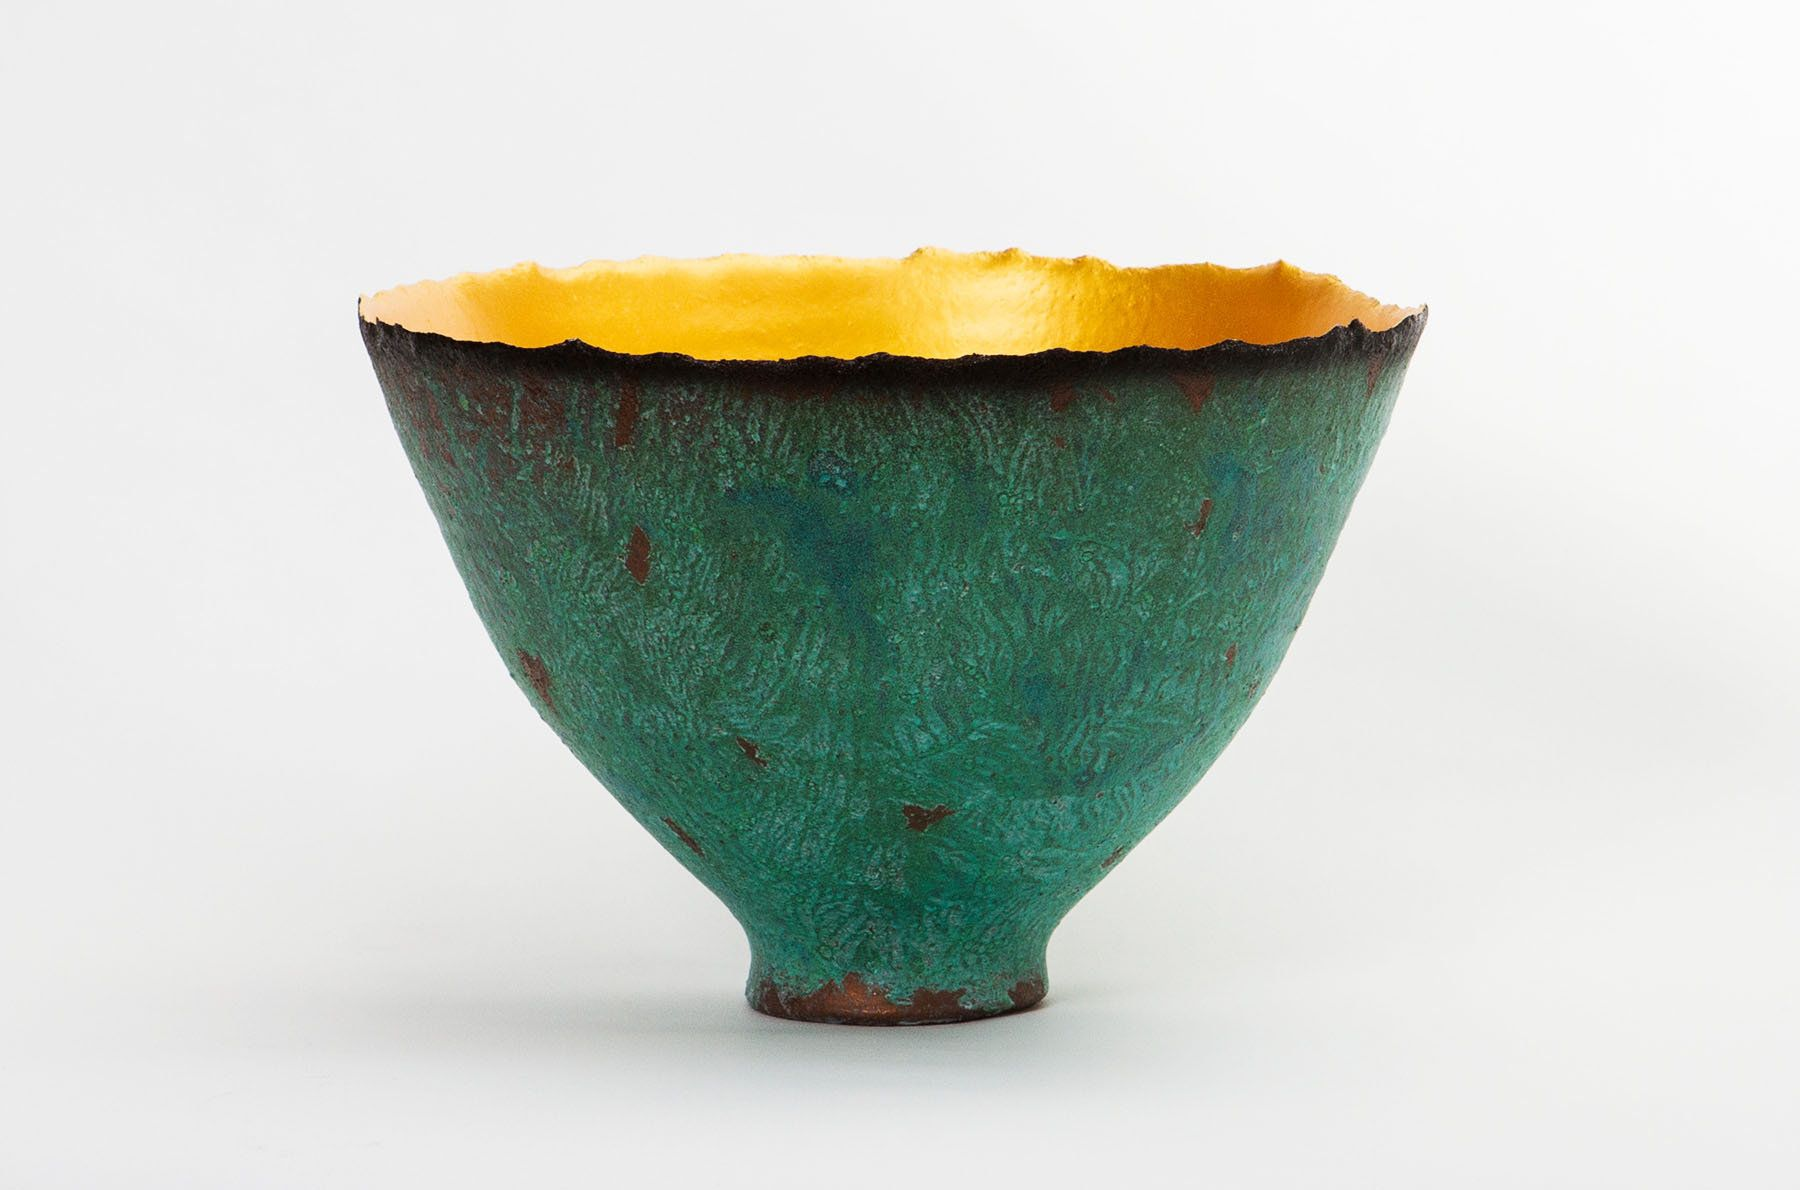 Decorative Ceramic Bowl Patina Prosperity Bowlcheryl Williams Ceramic Bowl  Pottery